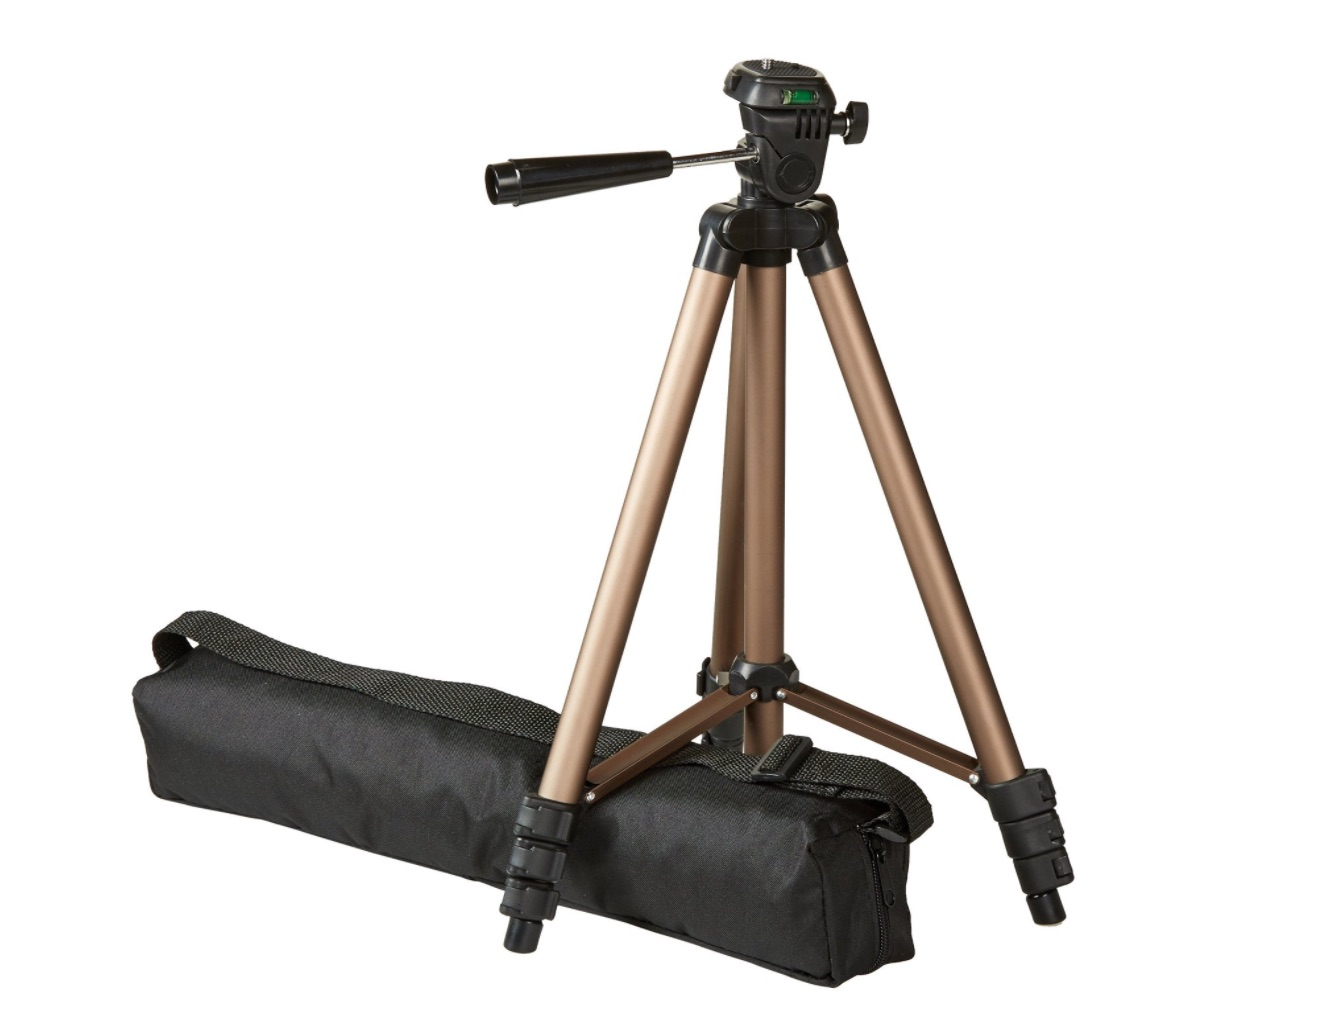 Amazon Basic Tripod